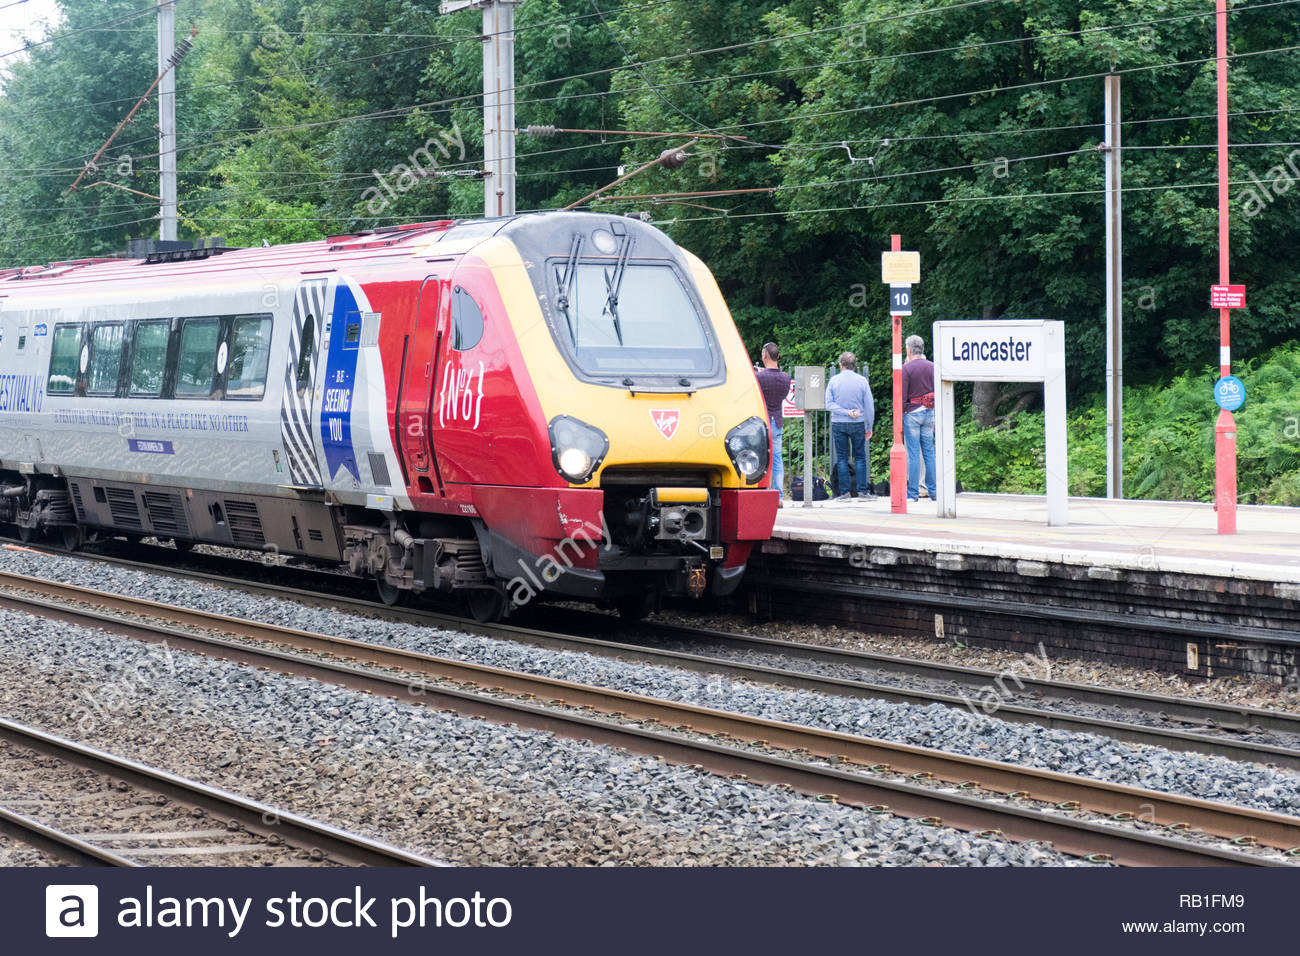 A train heading south and  operated by Virgin Trains pulls into Lancaster Railway Station, Lancashire, England, UK on the West Coast mainline Stock Photo